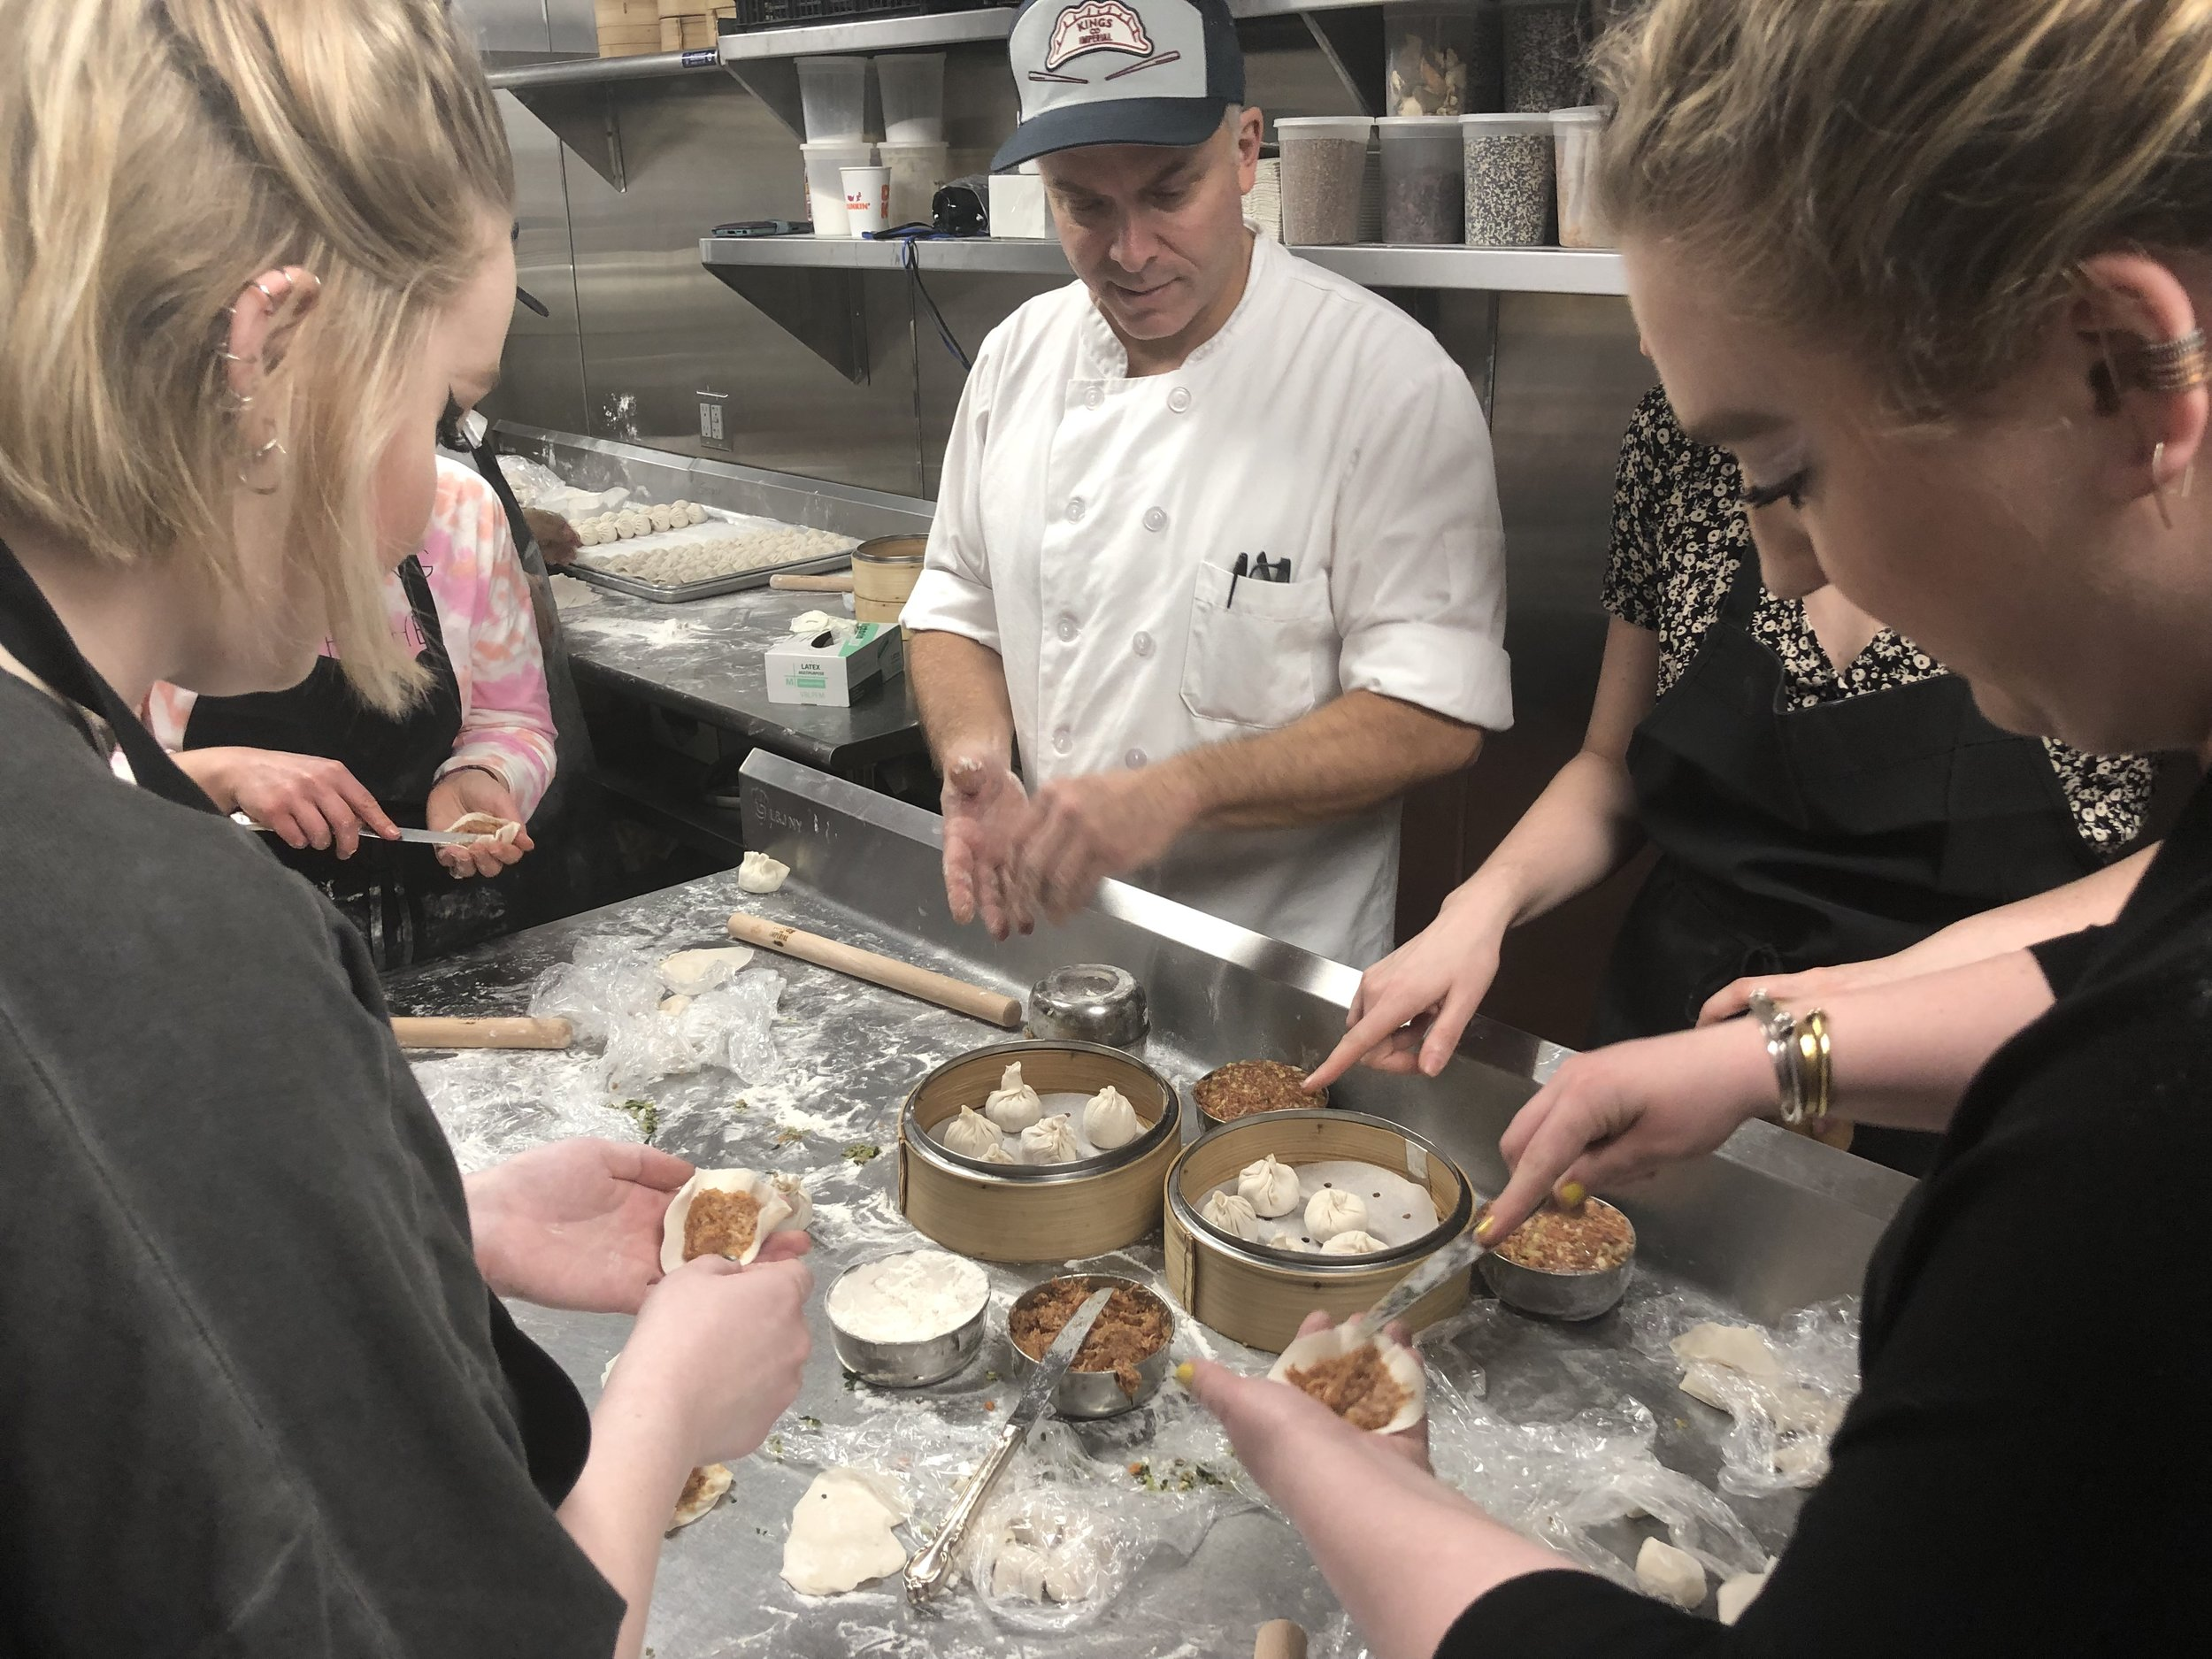 Josh Grinker teaching our Leisurely class the subtle art of stuffing dumplings. Photo: Leisurely